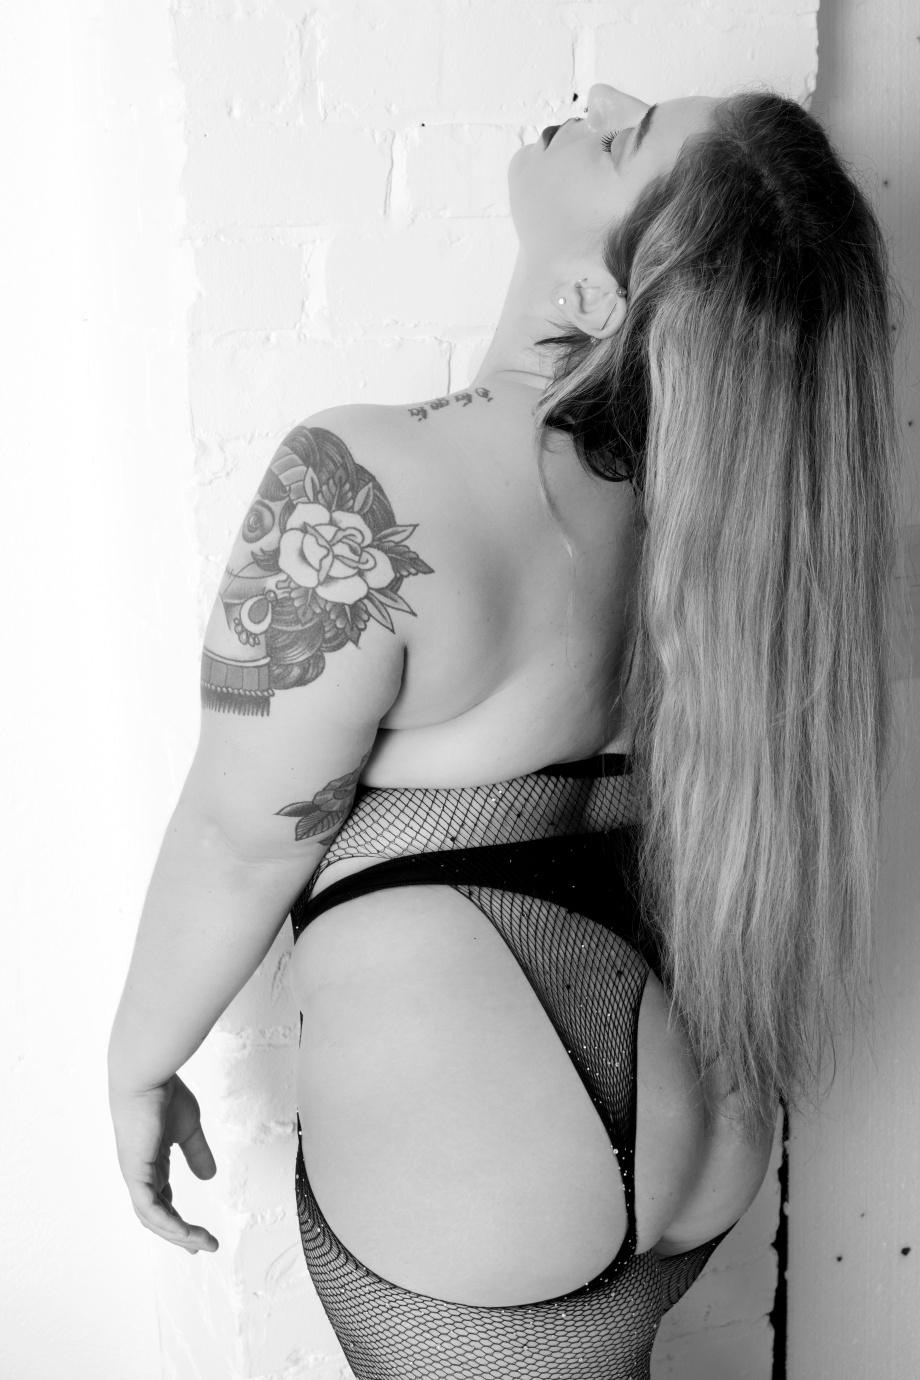 ava hennessy, glamour, studio shoot, curvy, pole dancer, exotic dancer, lingerie, black and white